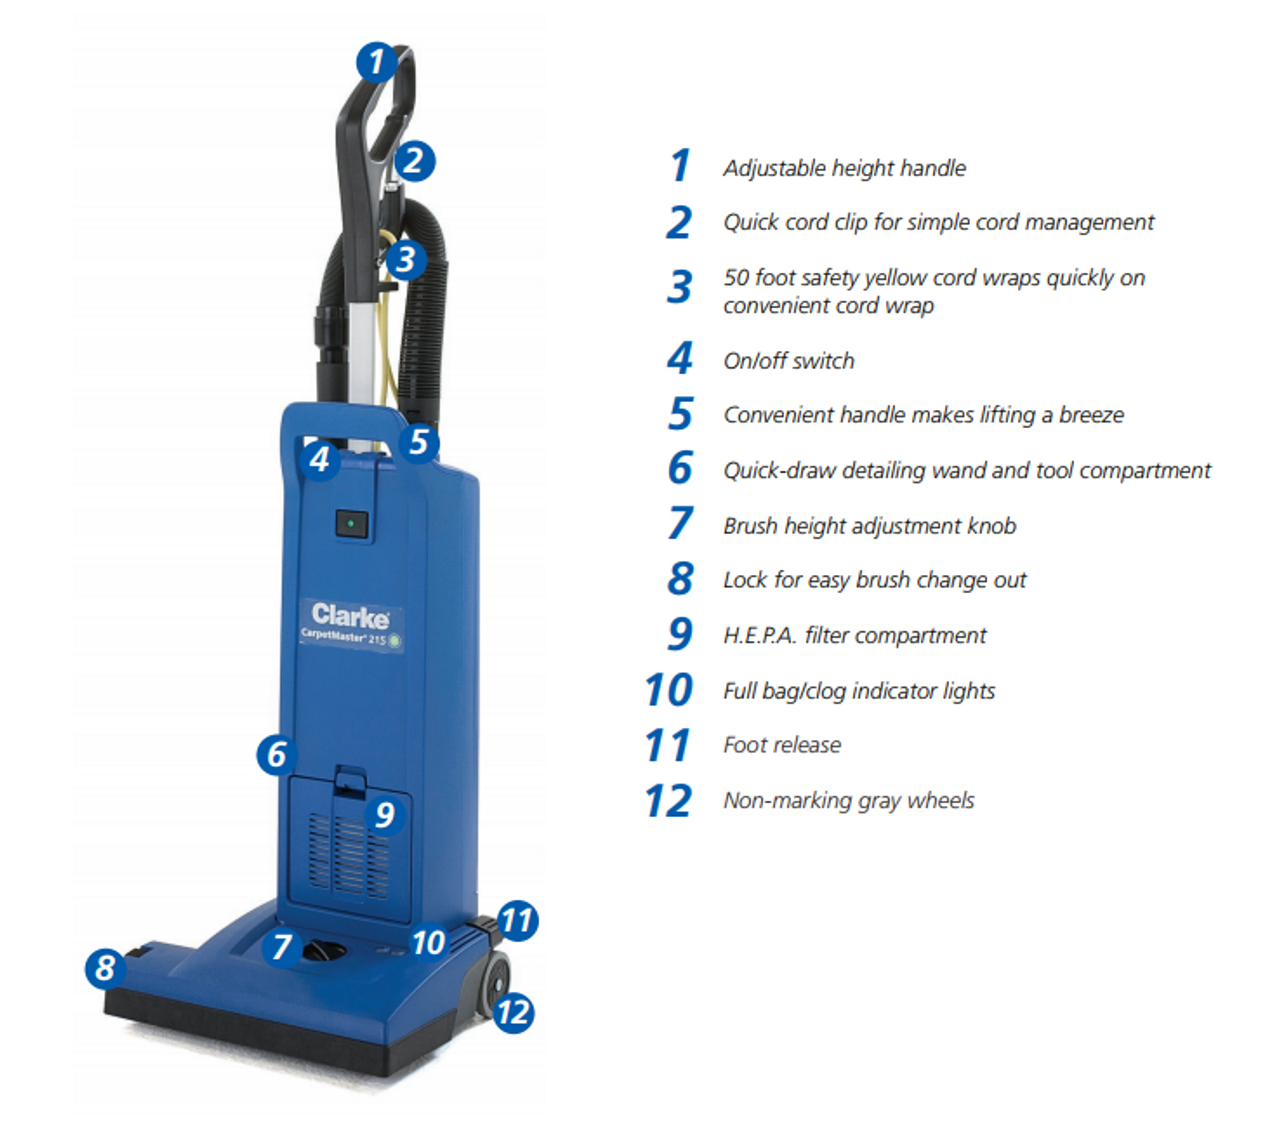 Clarke CarpetMaster 218 features